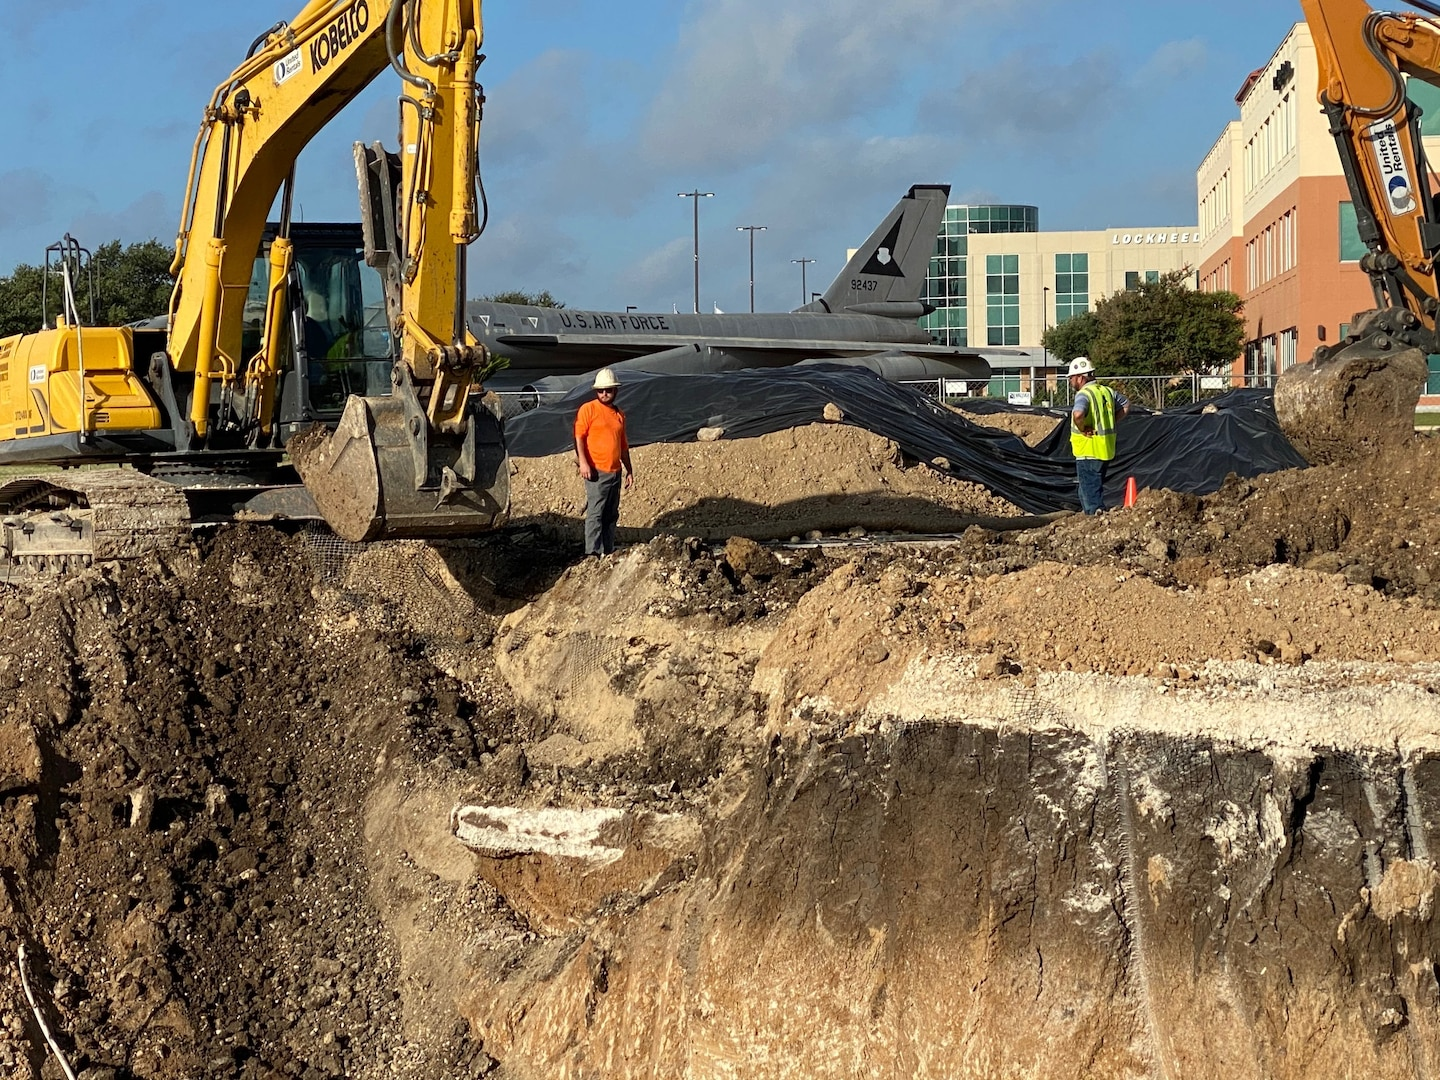 Contractors dig a site on the former Kelly Air Force Base, Texas.